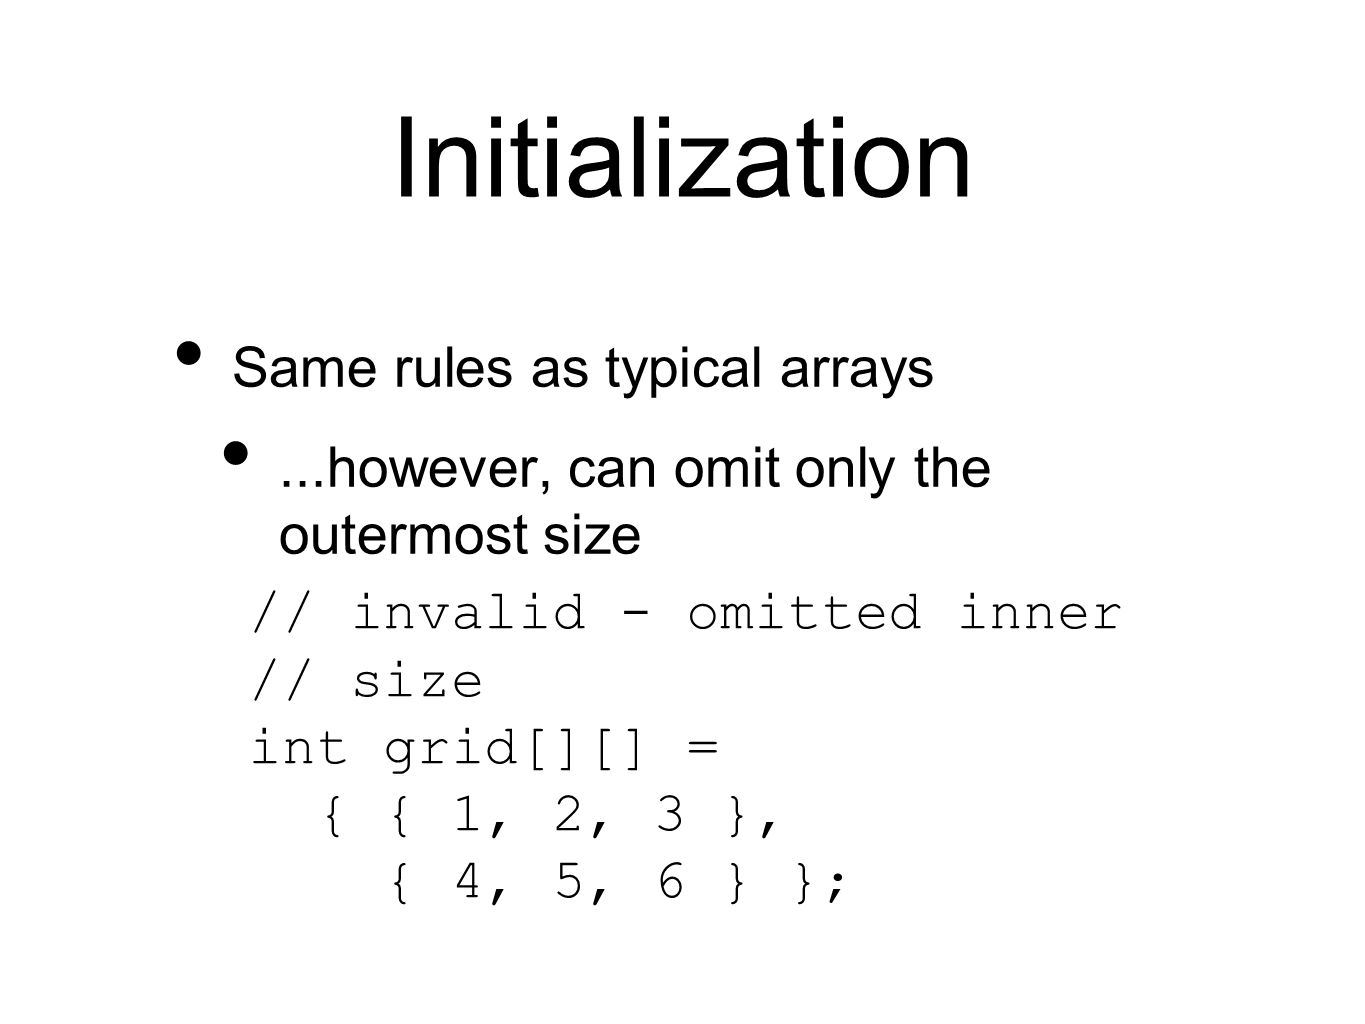 Initialization Same rules as typical arrays...however, can omit only the outermost size // invalid - omitted inner // size int grid[][] = { { 1, 2, 3 }, { 4, 5, 6 } };